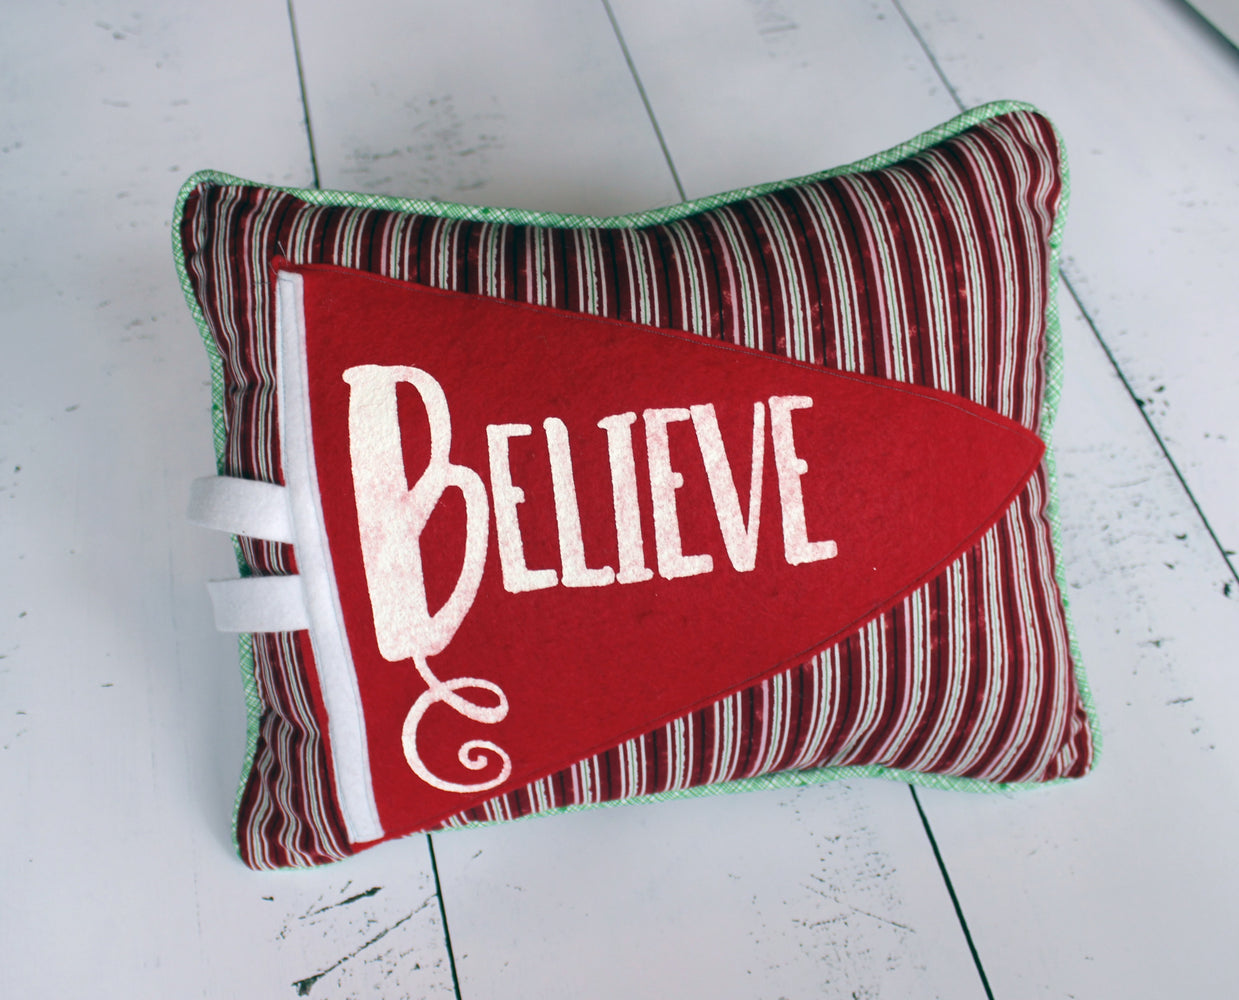 vintage style pennant pillow - Believe